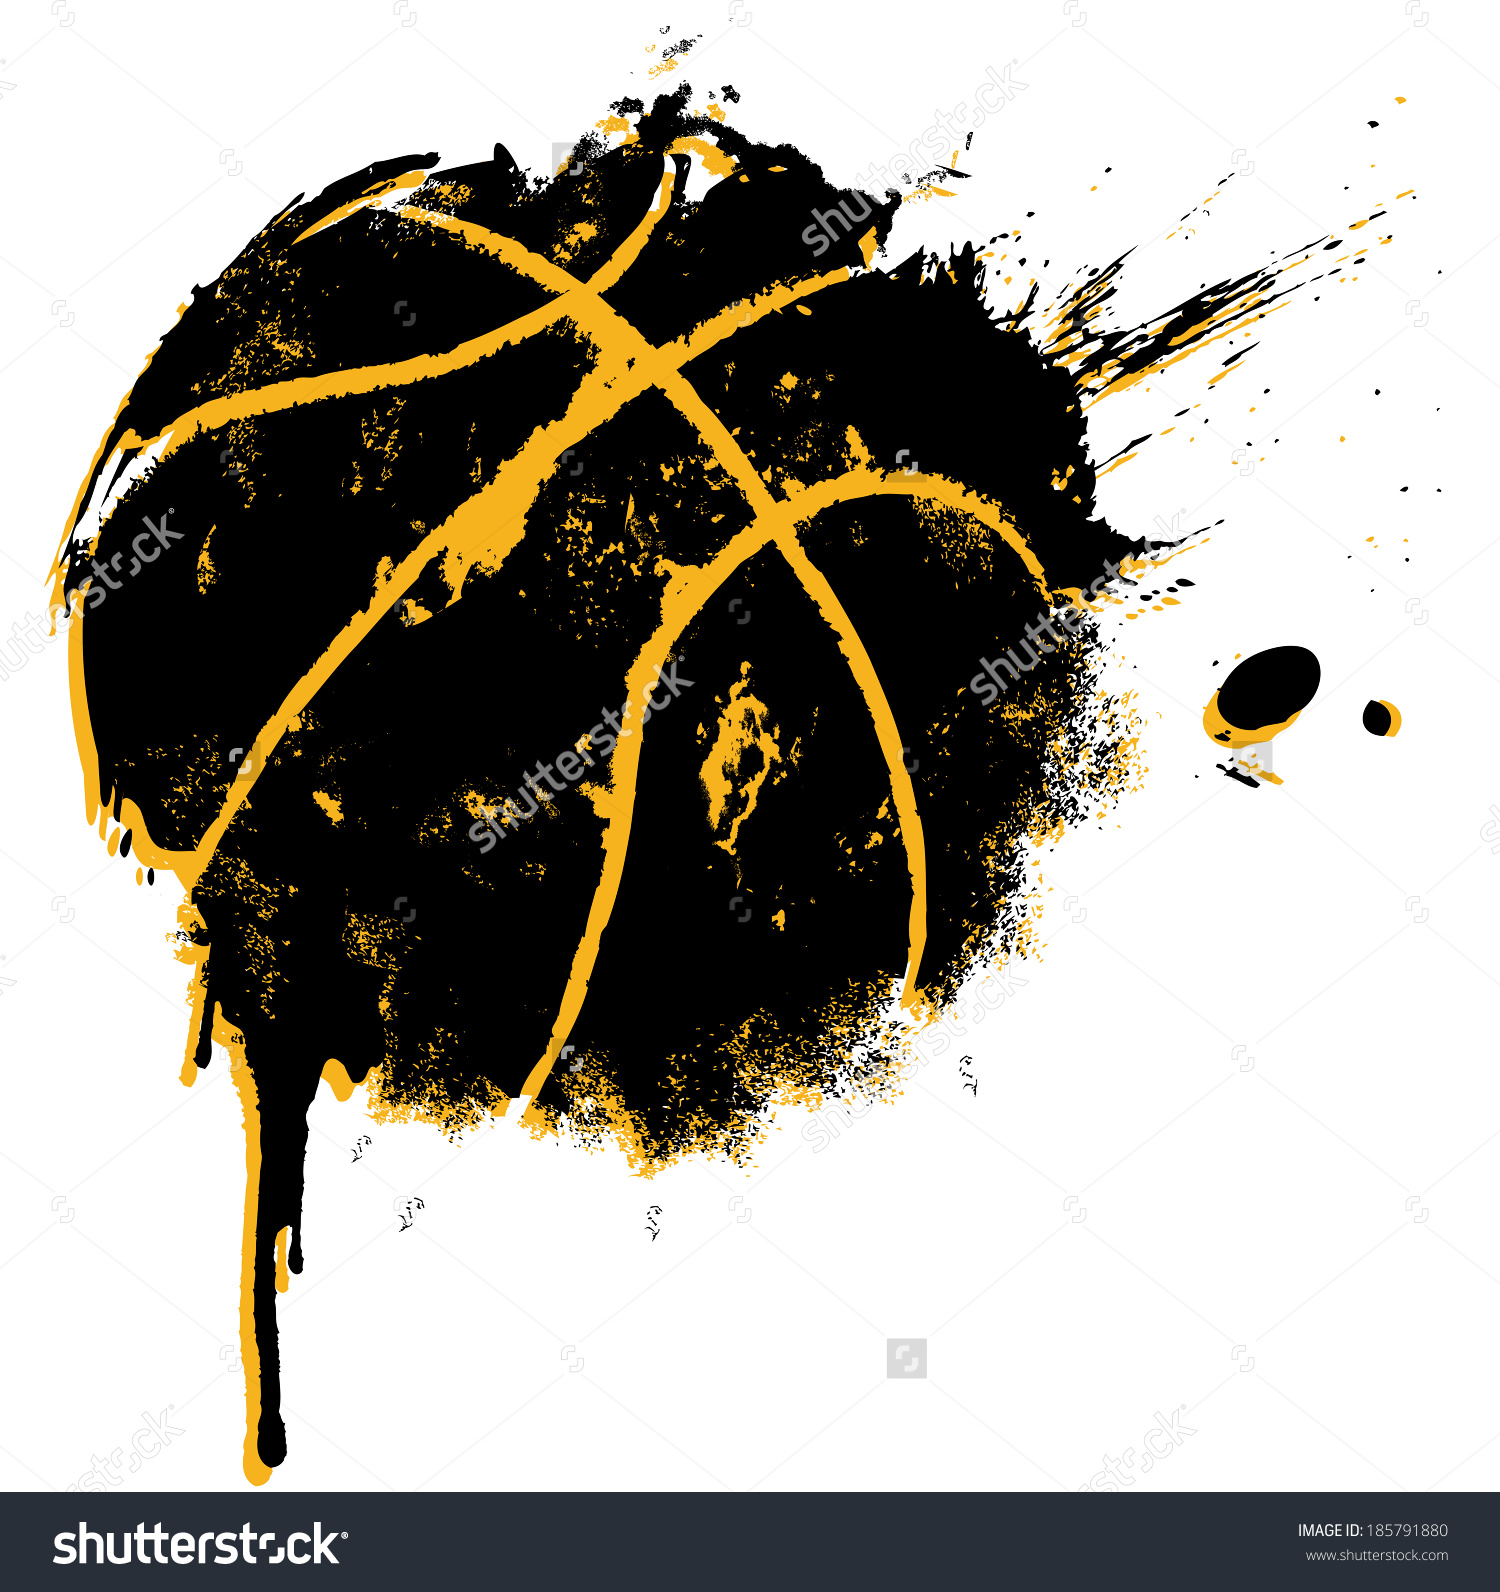 Christian Wallpaper Hd 3d Download Basketball Graffiti Wallpapers Gallery